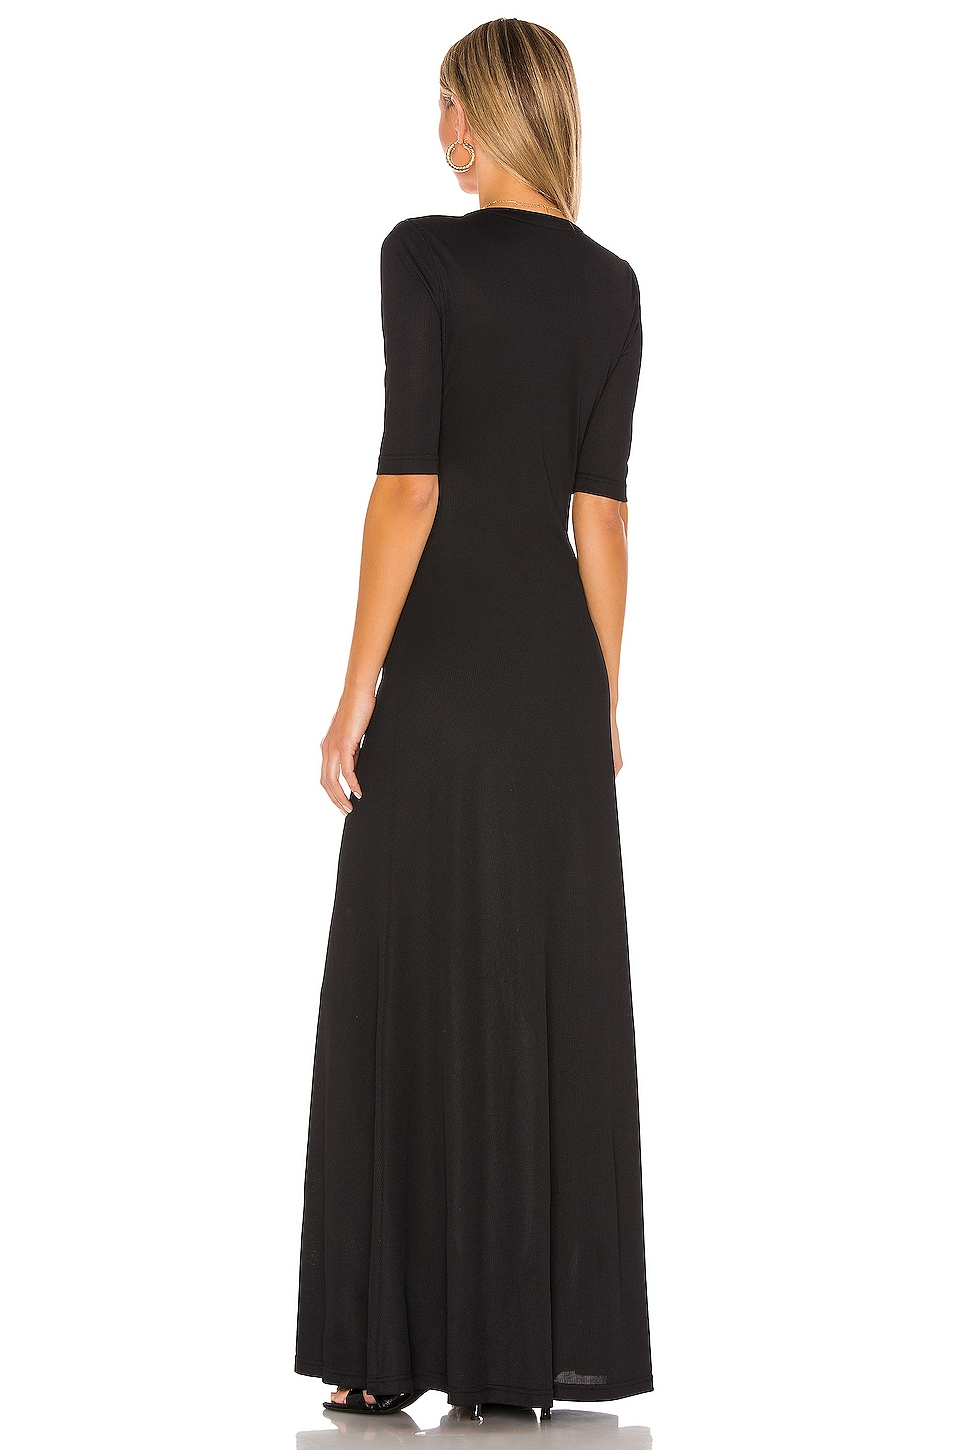 The Esperanza Maxi Dress, view 4, click to view large image.